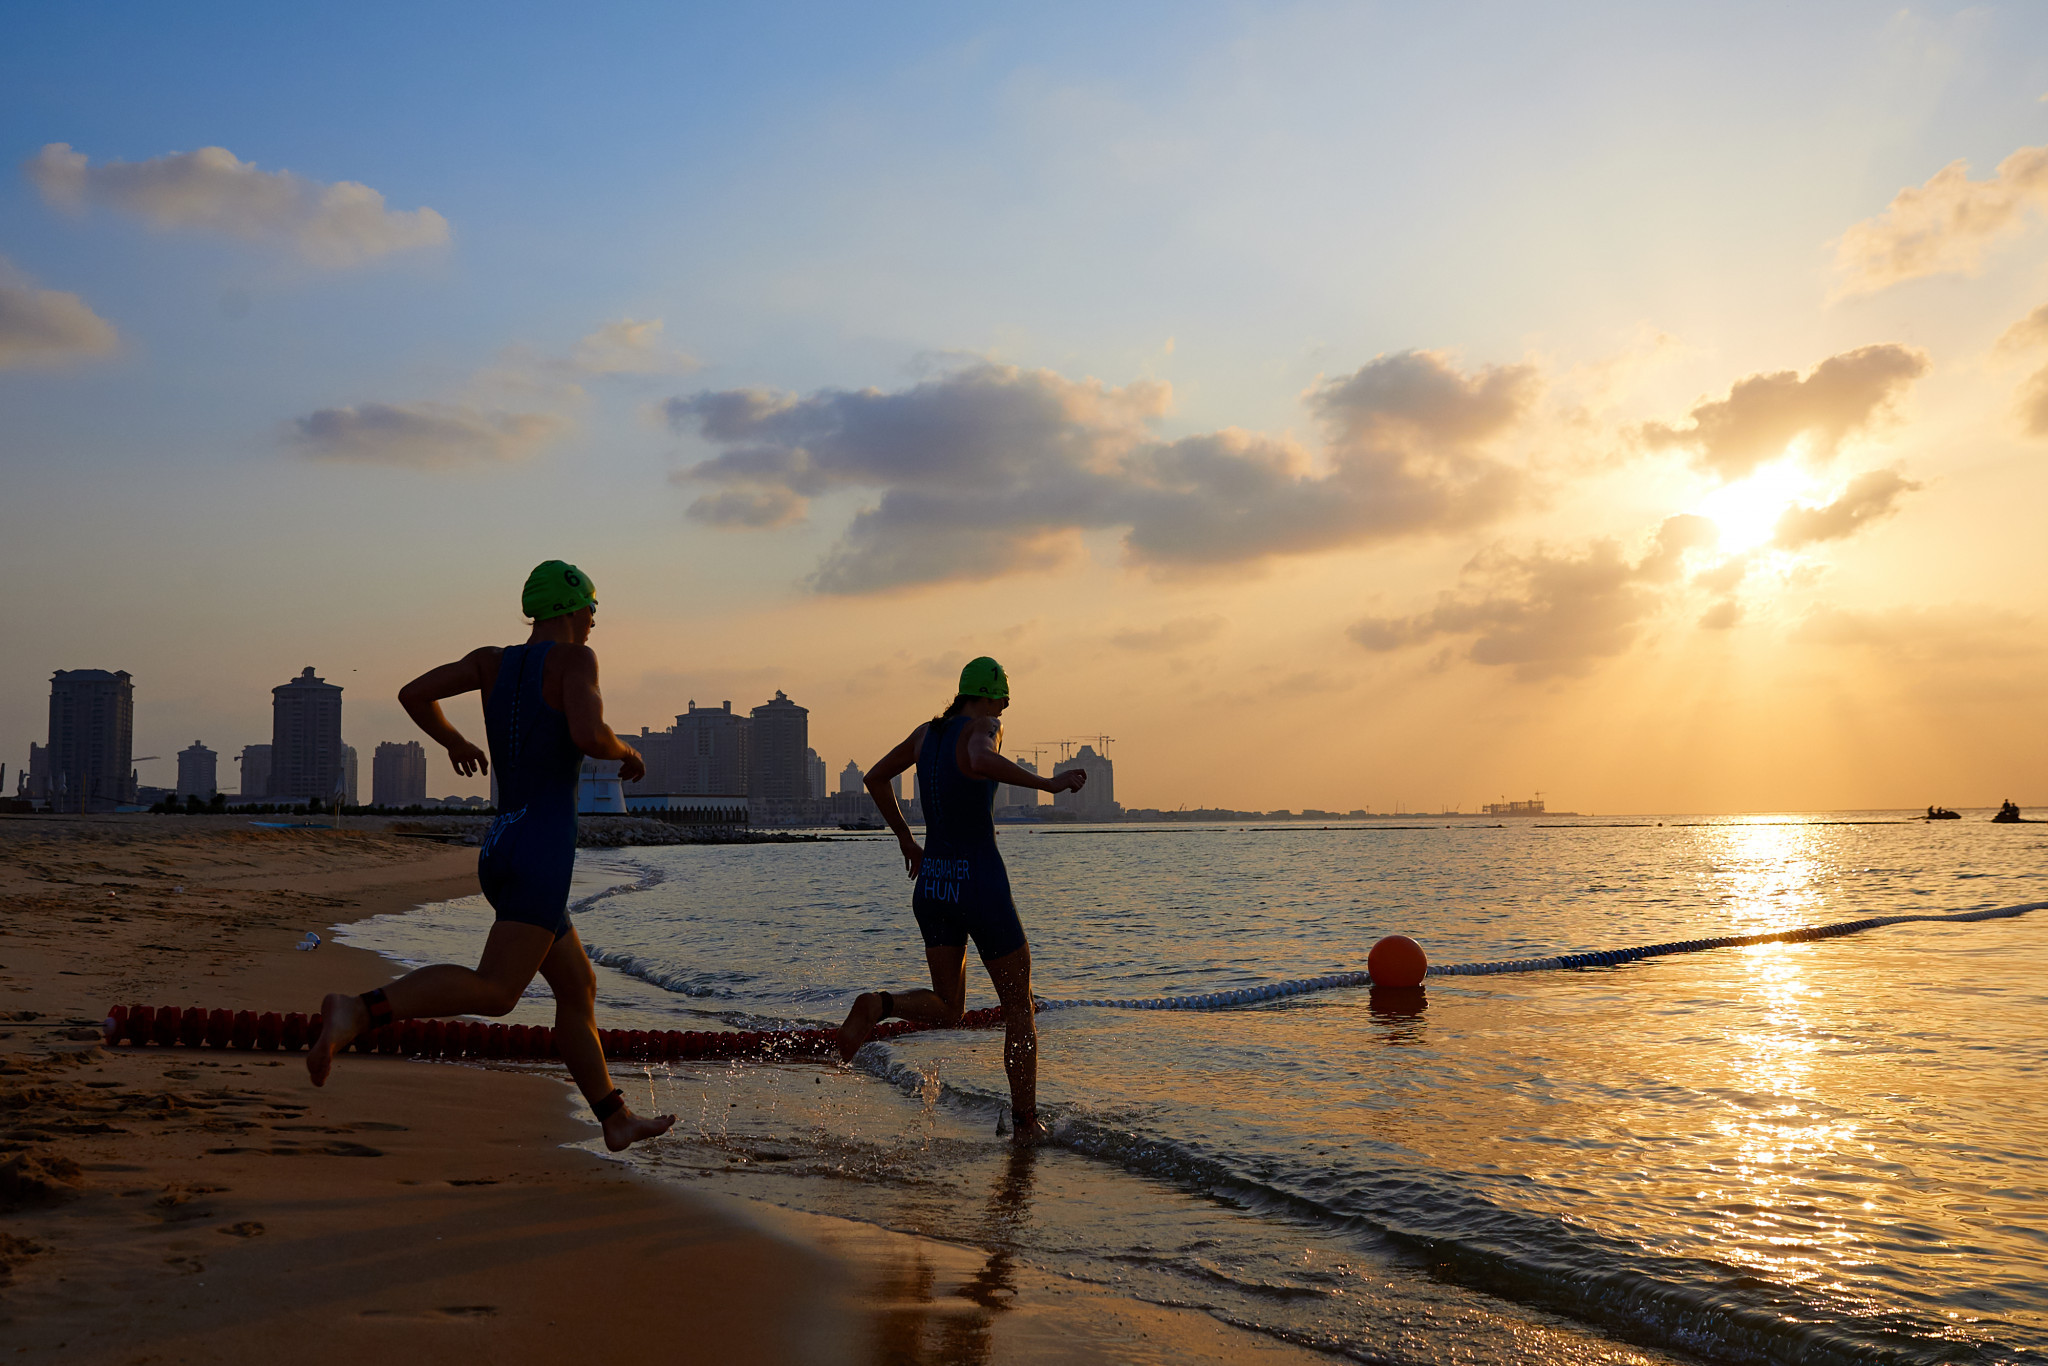 The hot conditions made it brutal for competitors  despite the early morning start ©ANOC World Beach Games